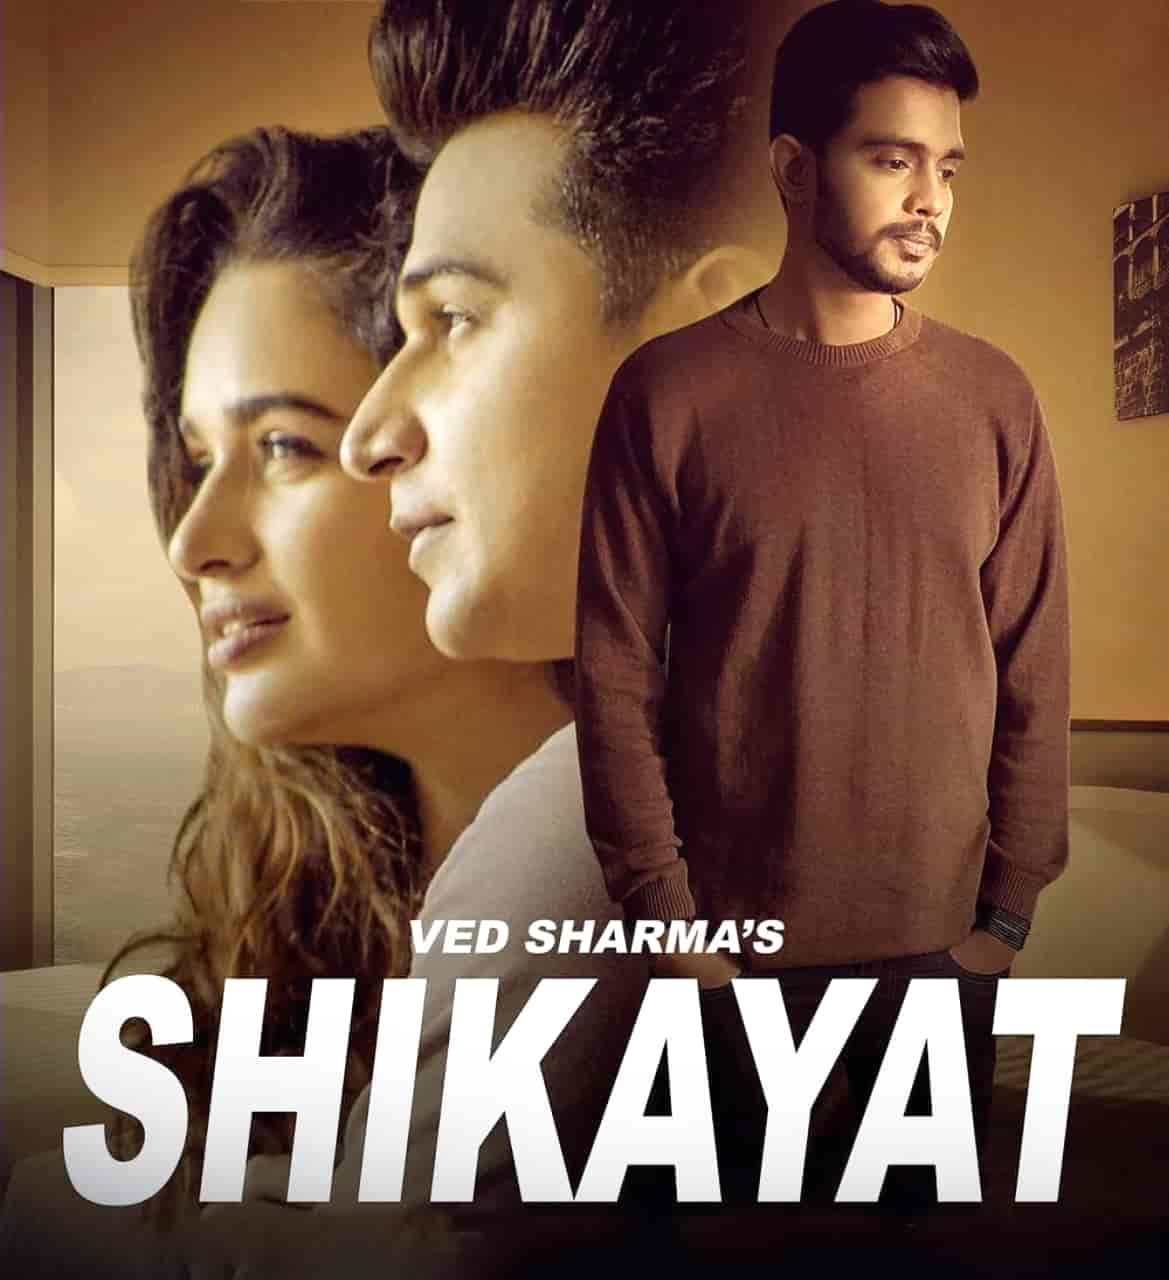 Shikayat Song Image Features Prince Narula sung by Ved Sharma